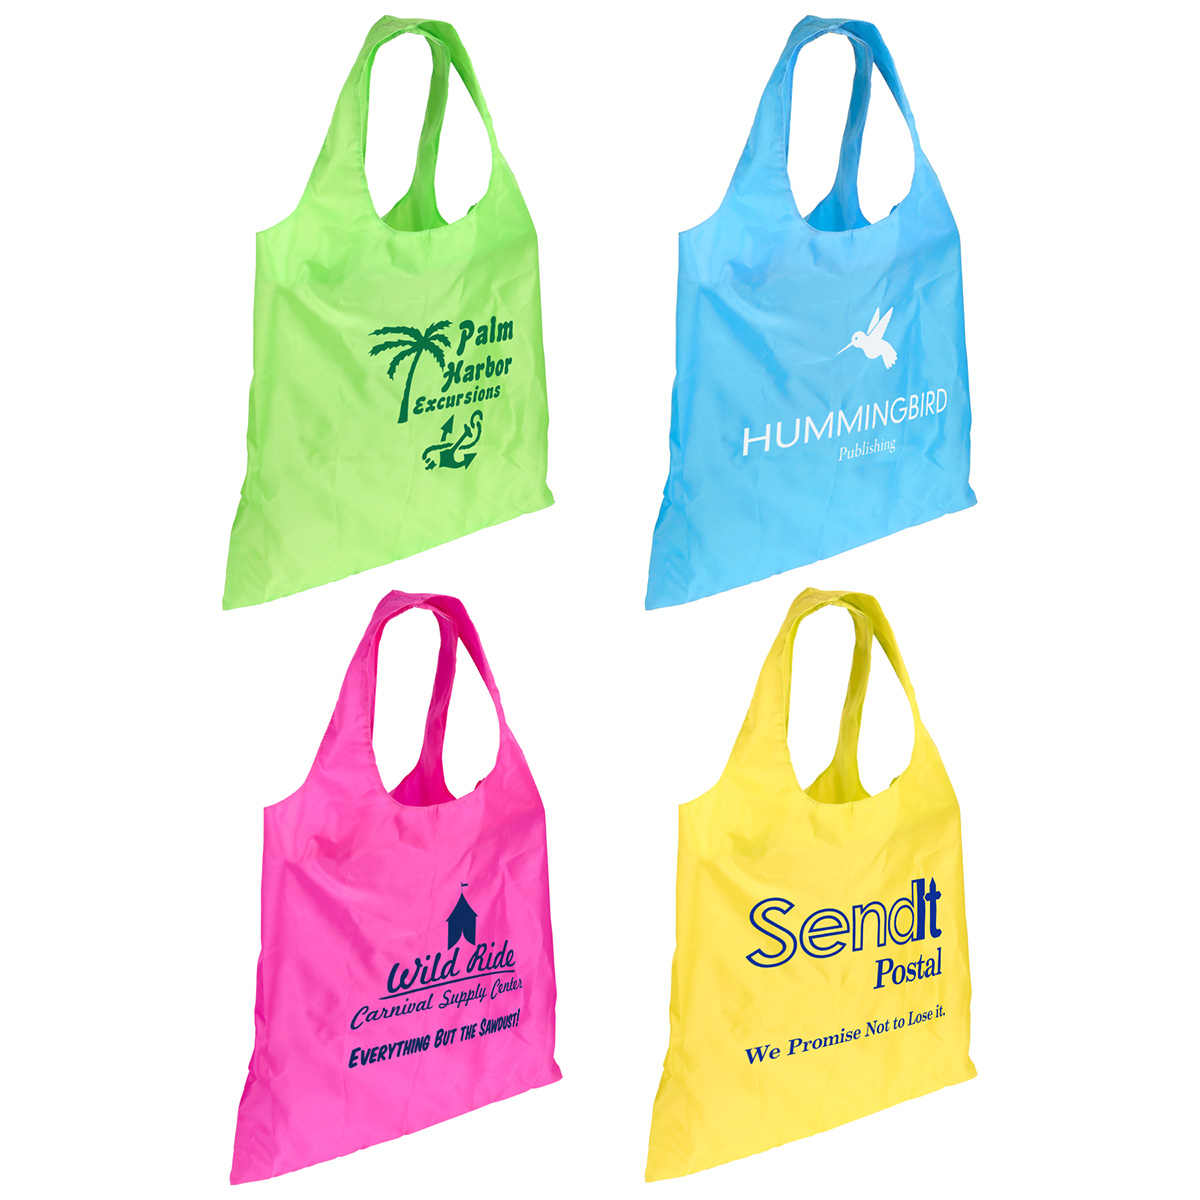 Spring Sling Folding Tote Bag, WBA-SS10, 1 Colour Imprint